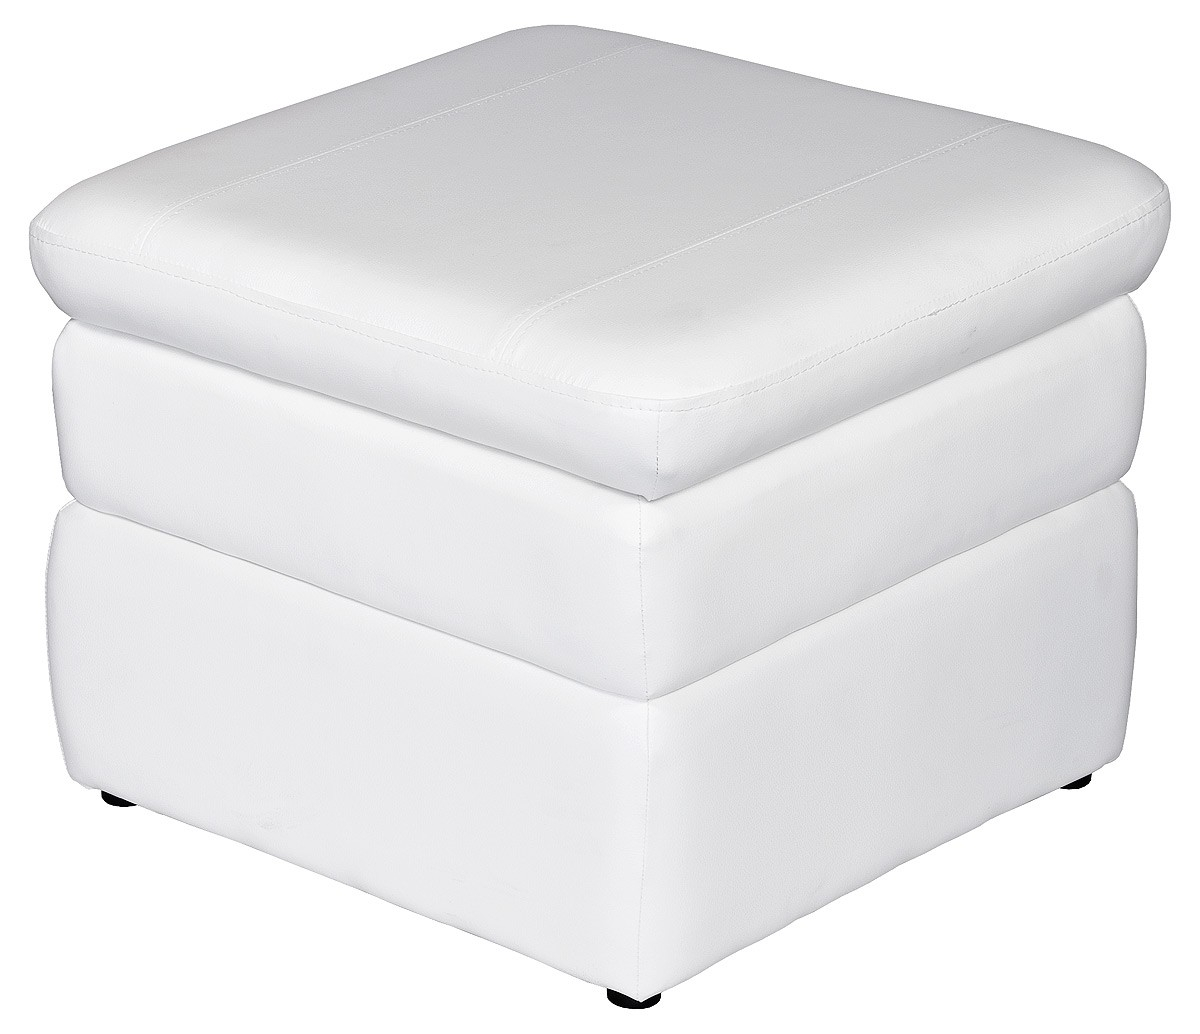 Salem Storage Pouffe White Be Fabulous Pertaining To Footstools And Pouffes With Storage (Image 9 of 15)